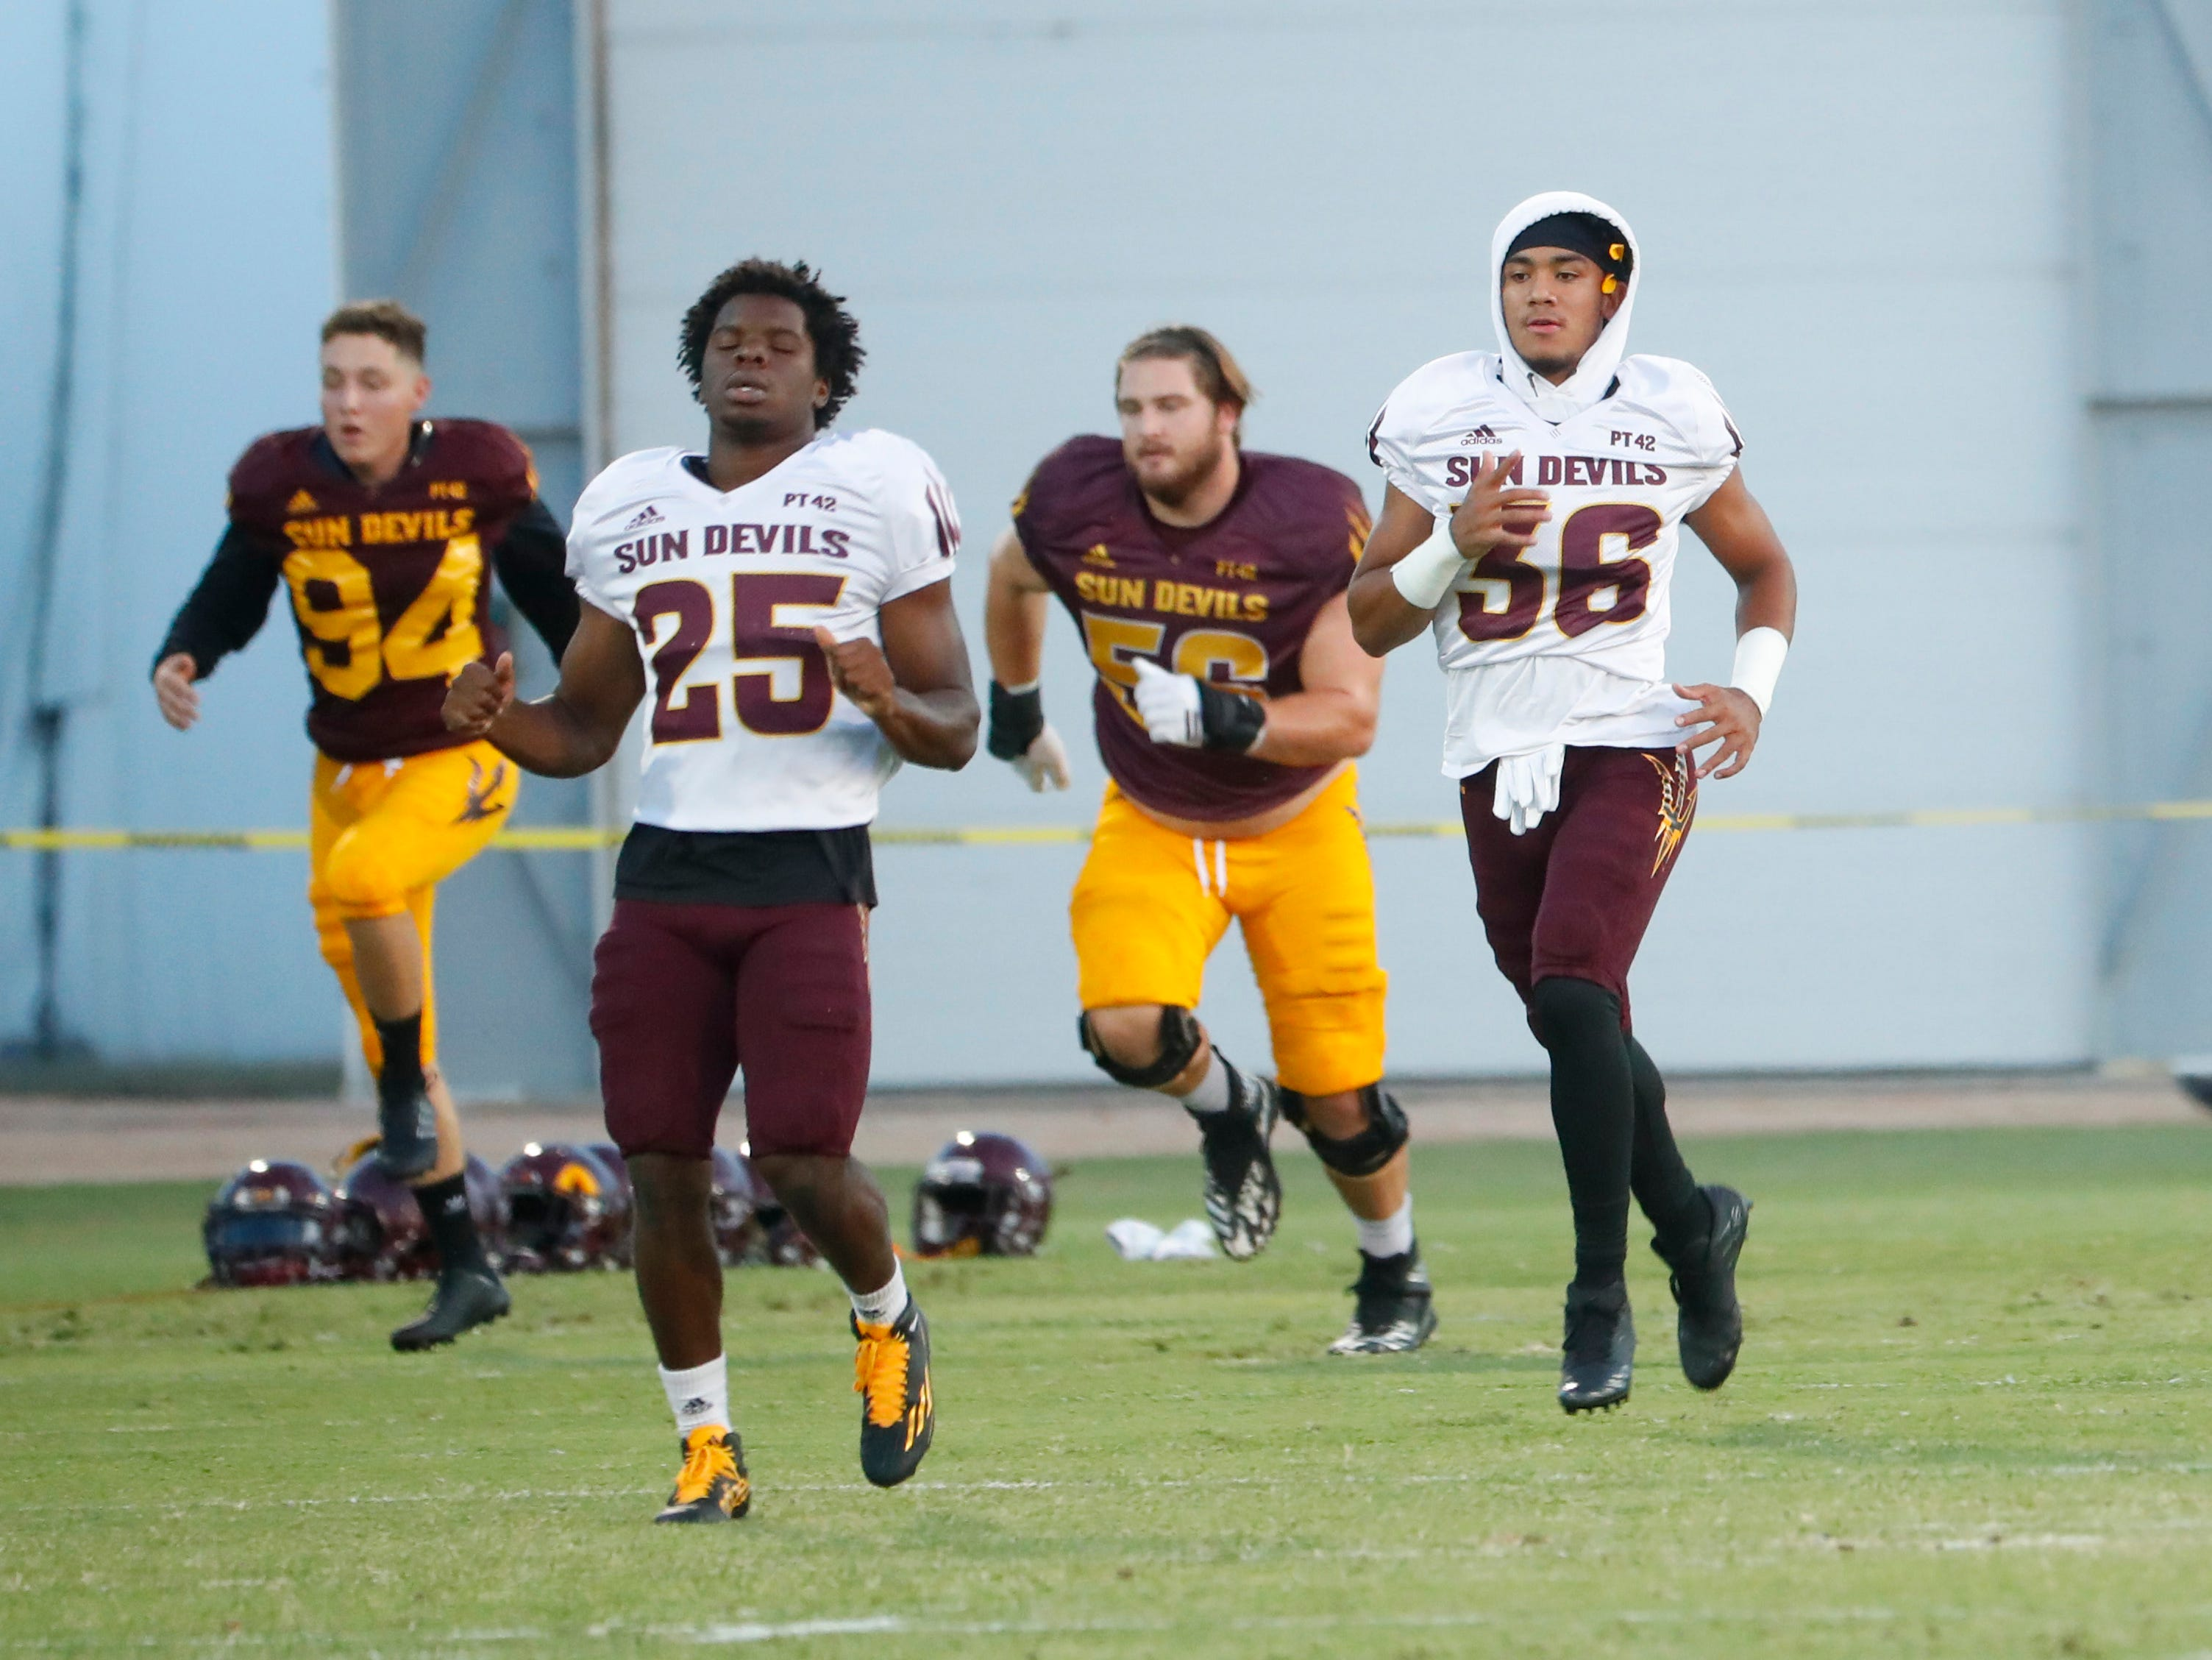 ASU players warmup during the ASU scrimmage at Kajikawa Practice Fields in Tempe, Ariz. on Aug. 11, 2018.